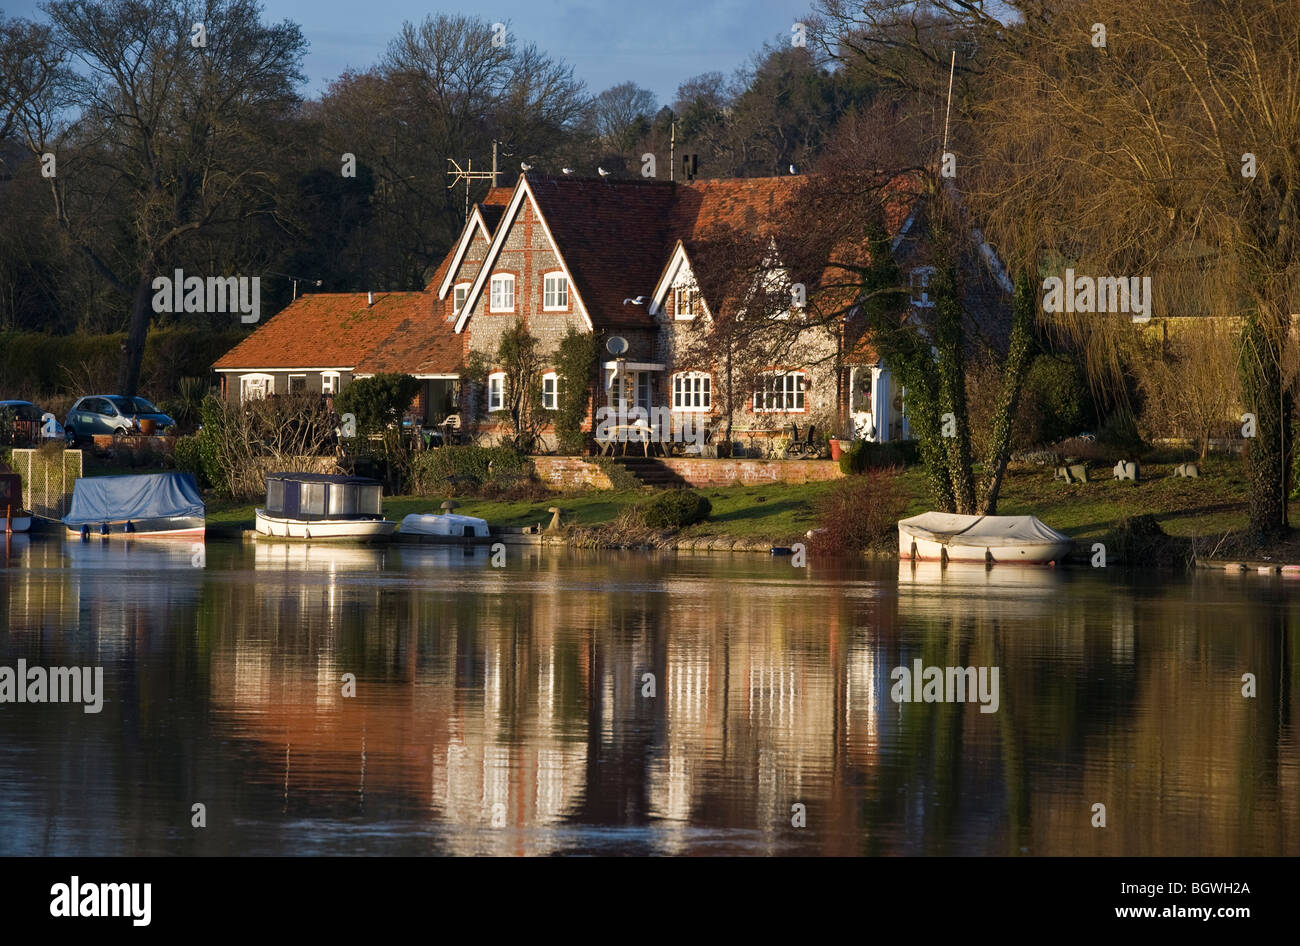 Riverside properties and houses at the River Thames upstream of Hambleden Weir Buckinghamshire UK - Stock Image